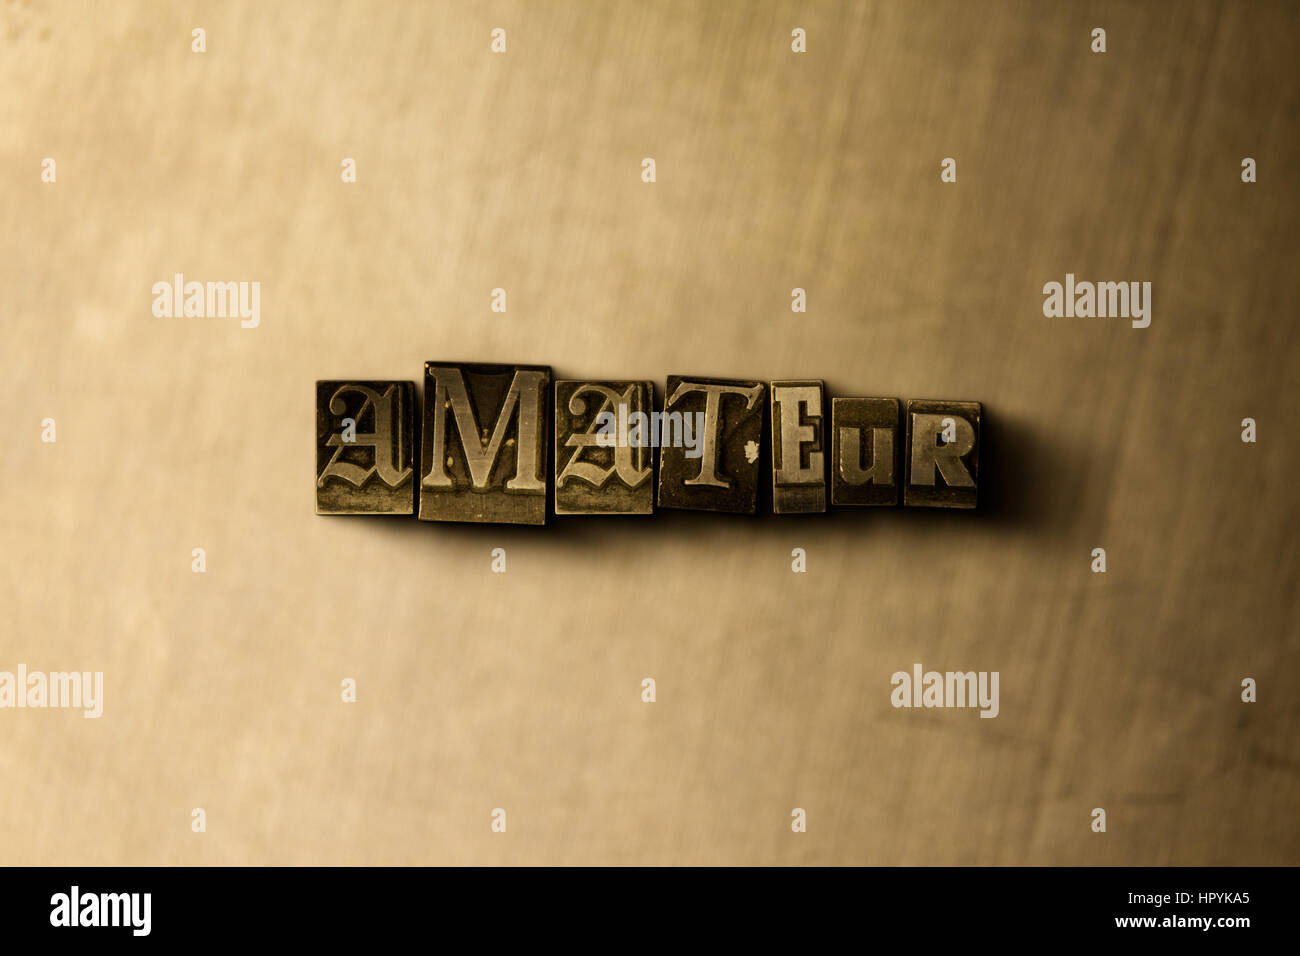 AMATEUR - close-up of grungy vintage typeset word on metal backdrop.  Royalty free